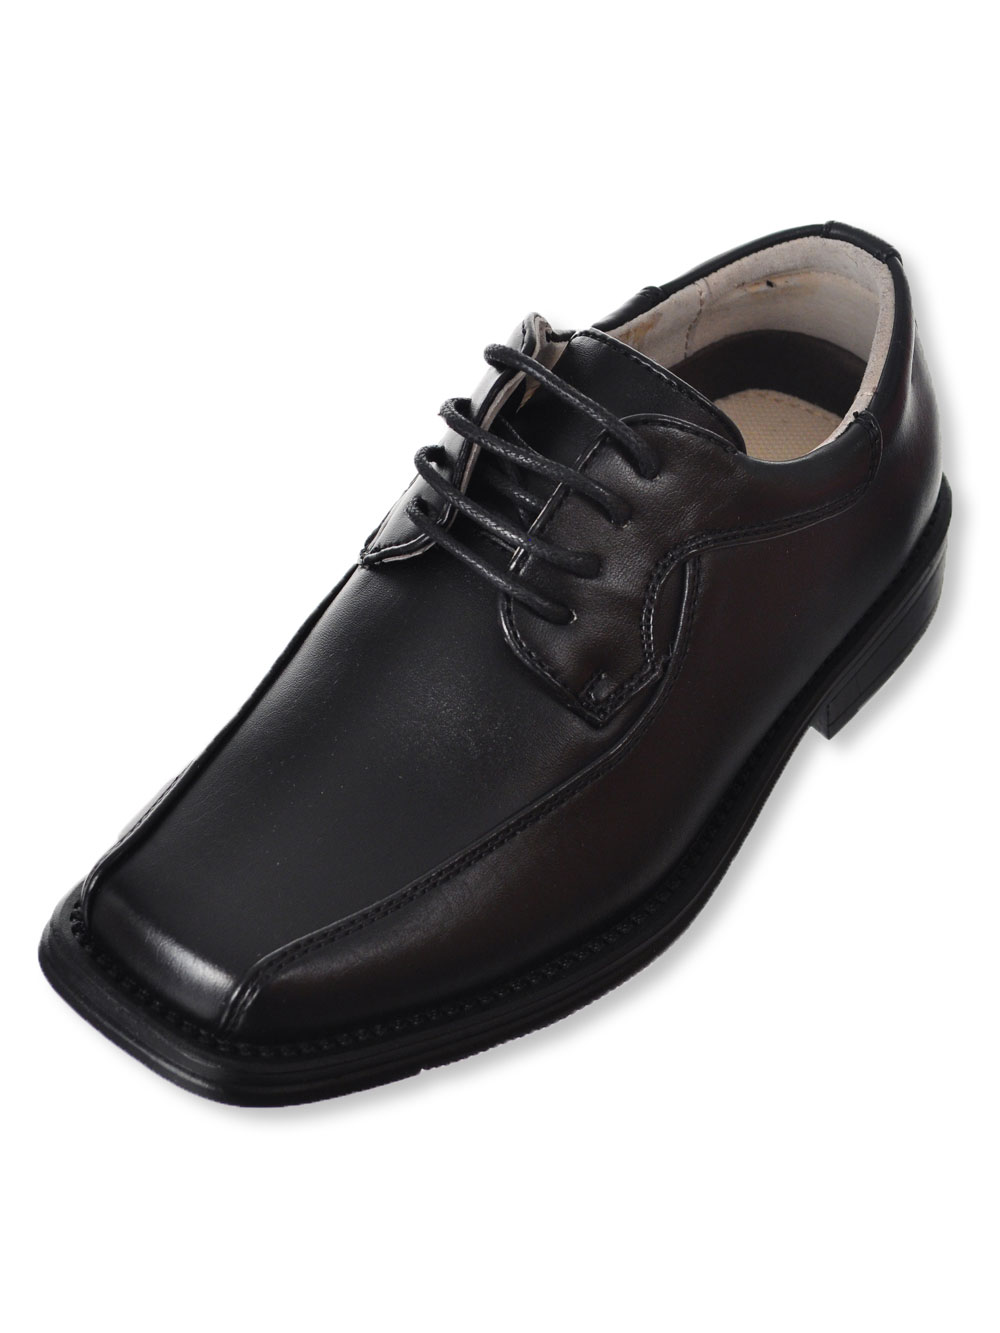 Easy Strider Dress Shoes